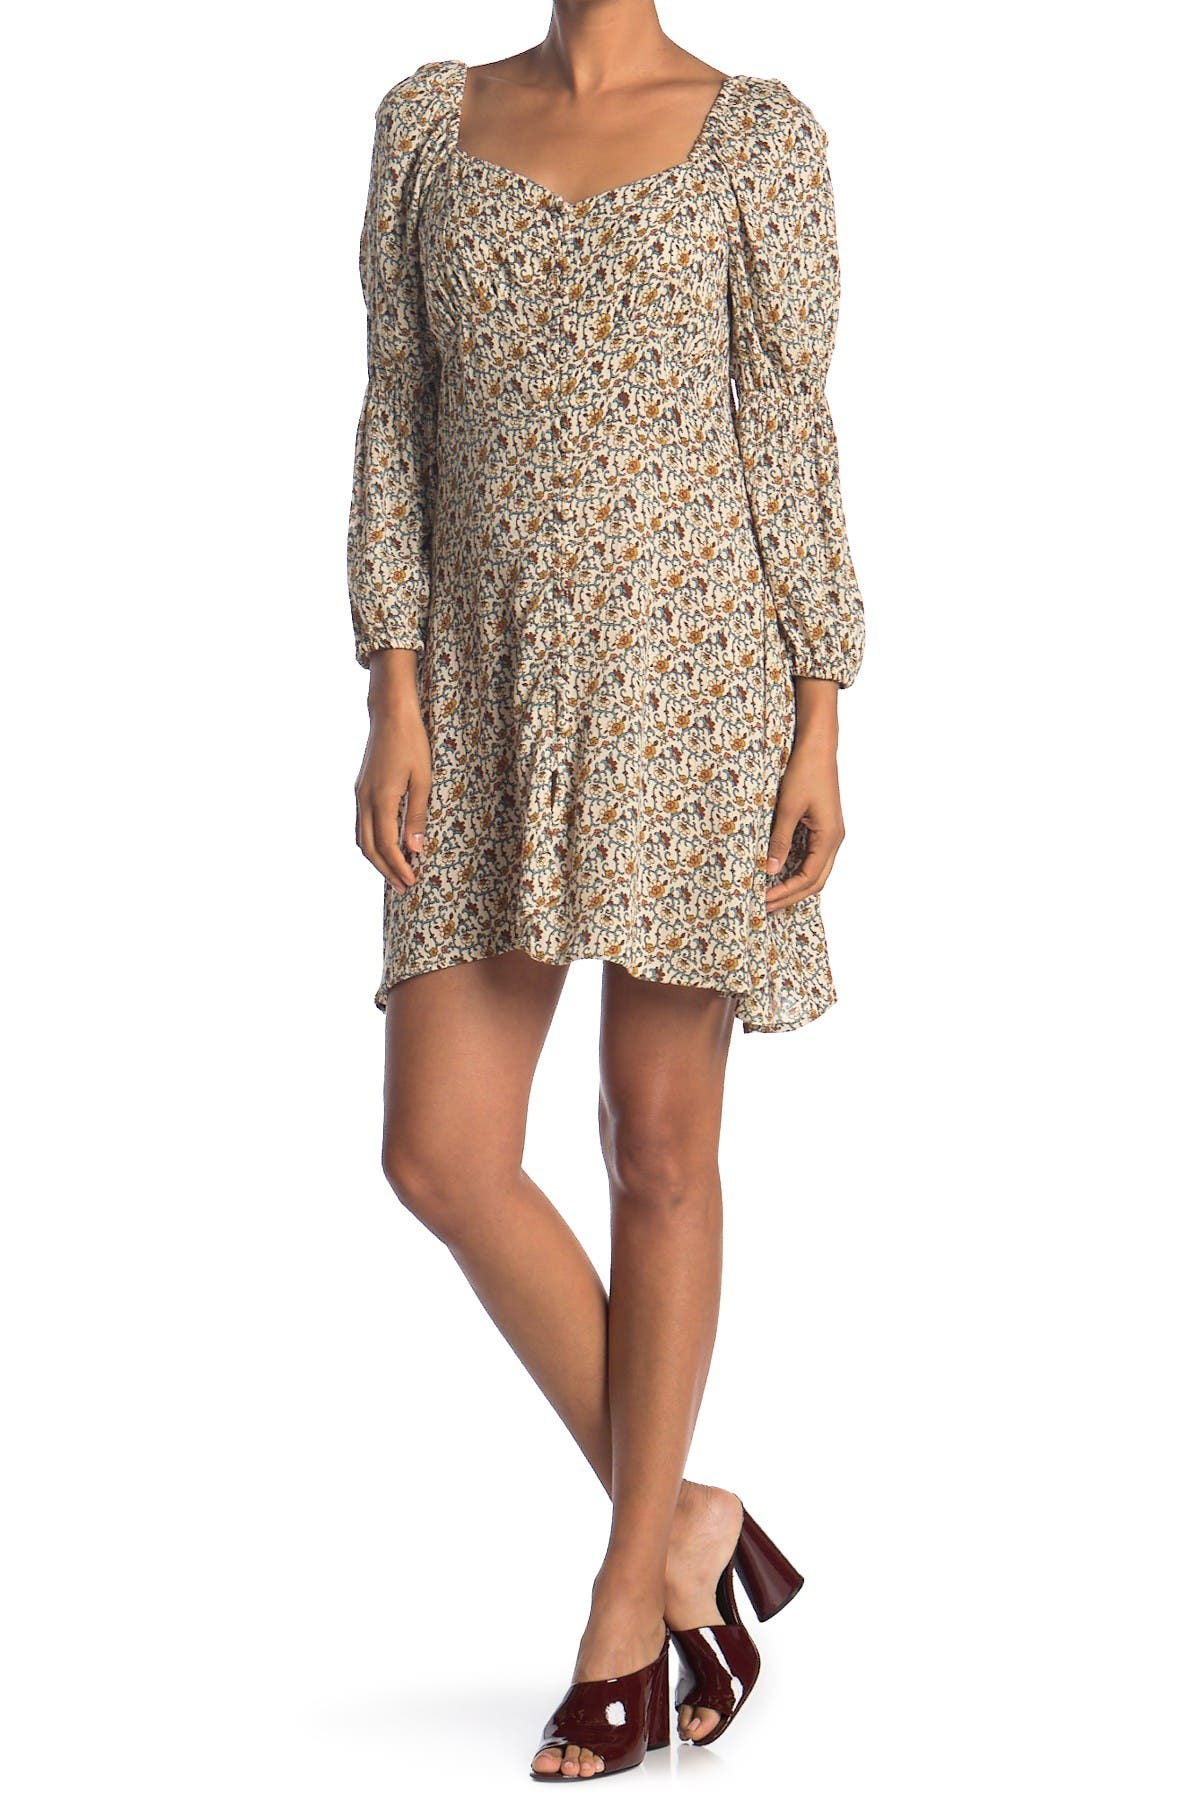 Image of Angie Long Sleeve Button Dress